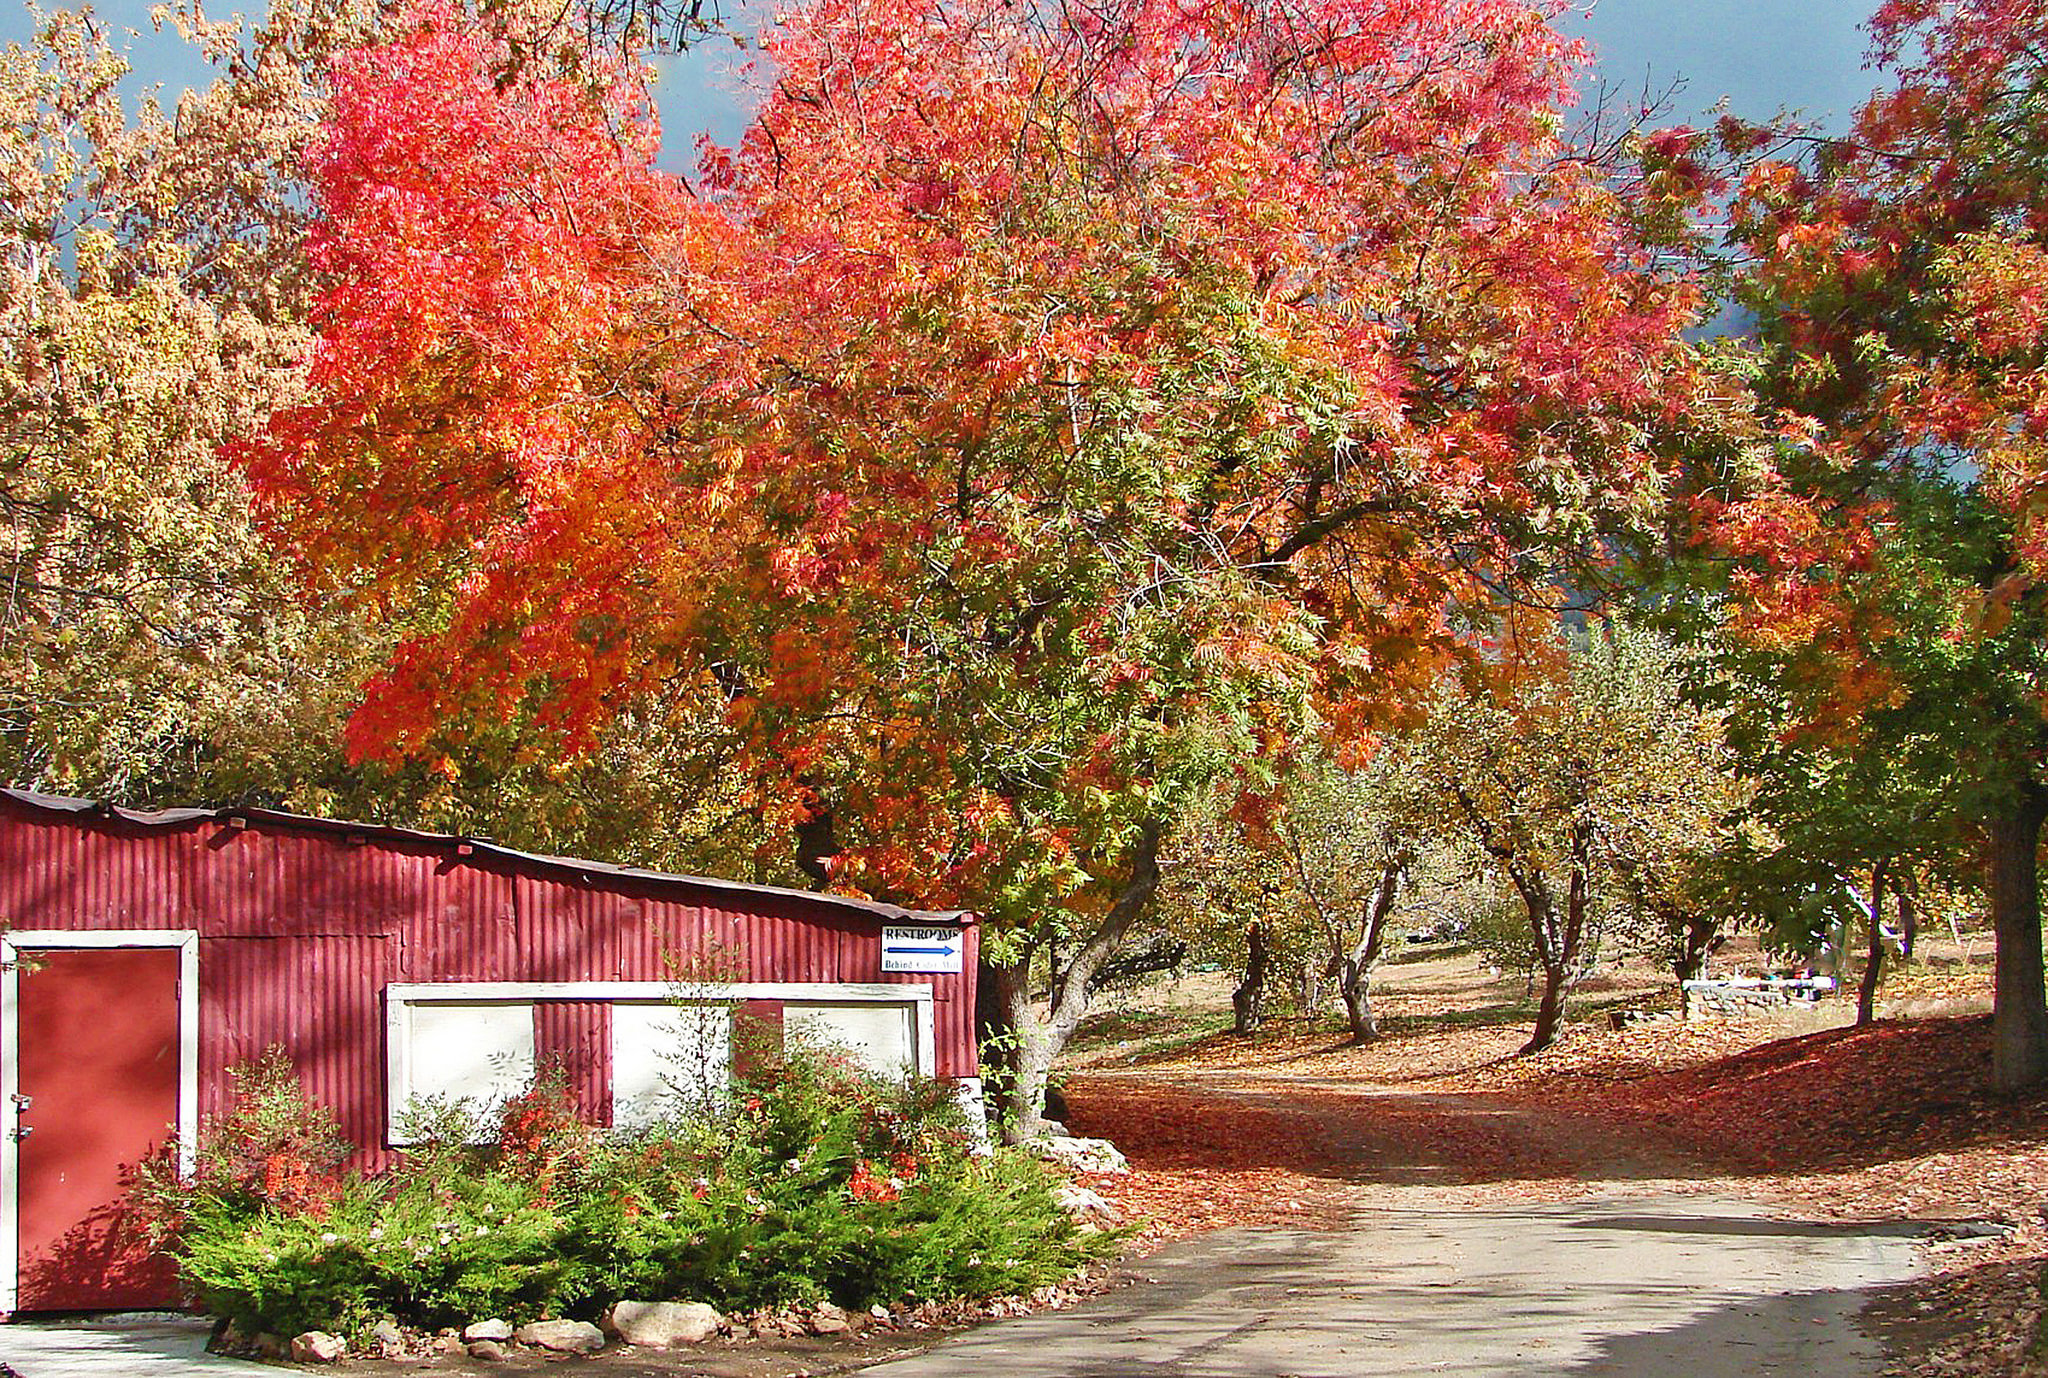 Where to see the best fall foliage around LA